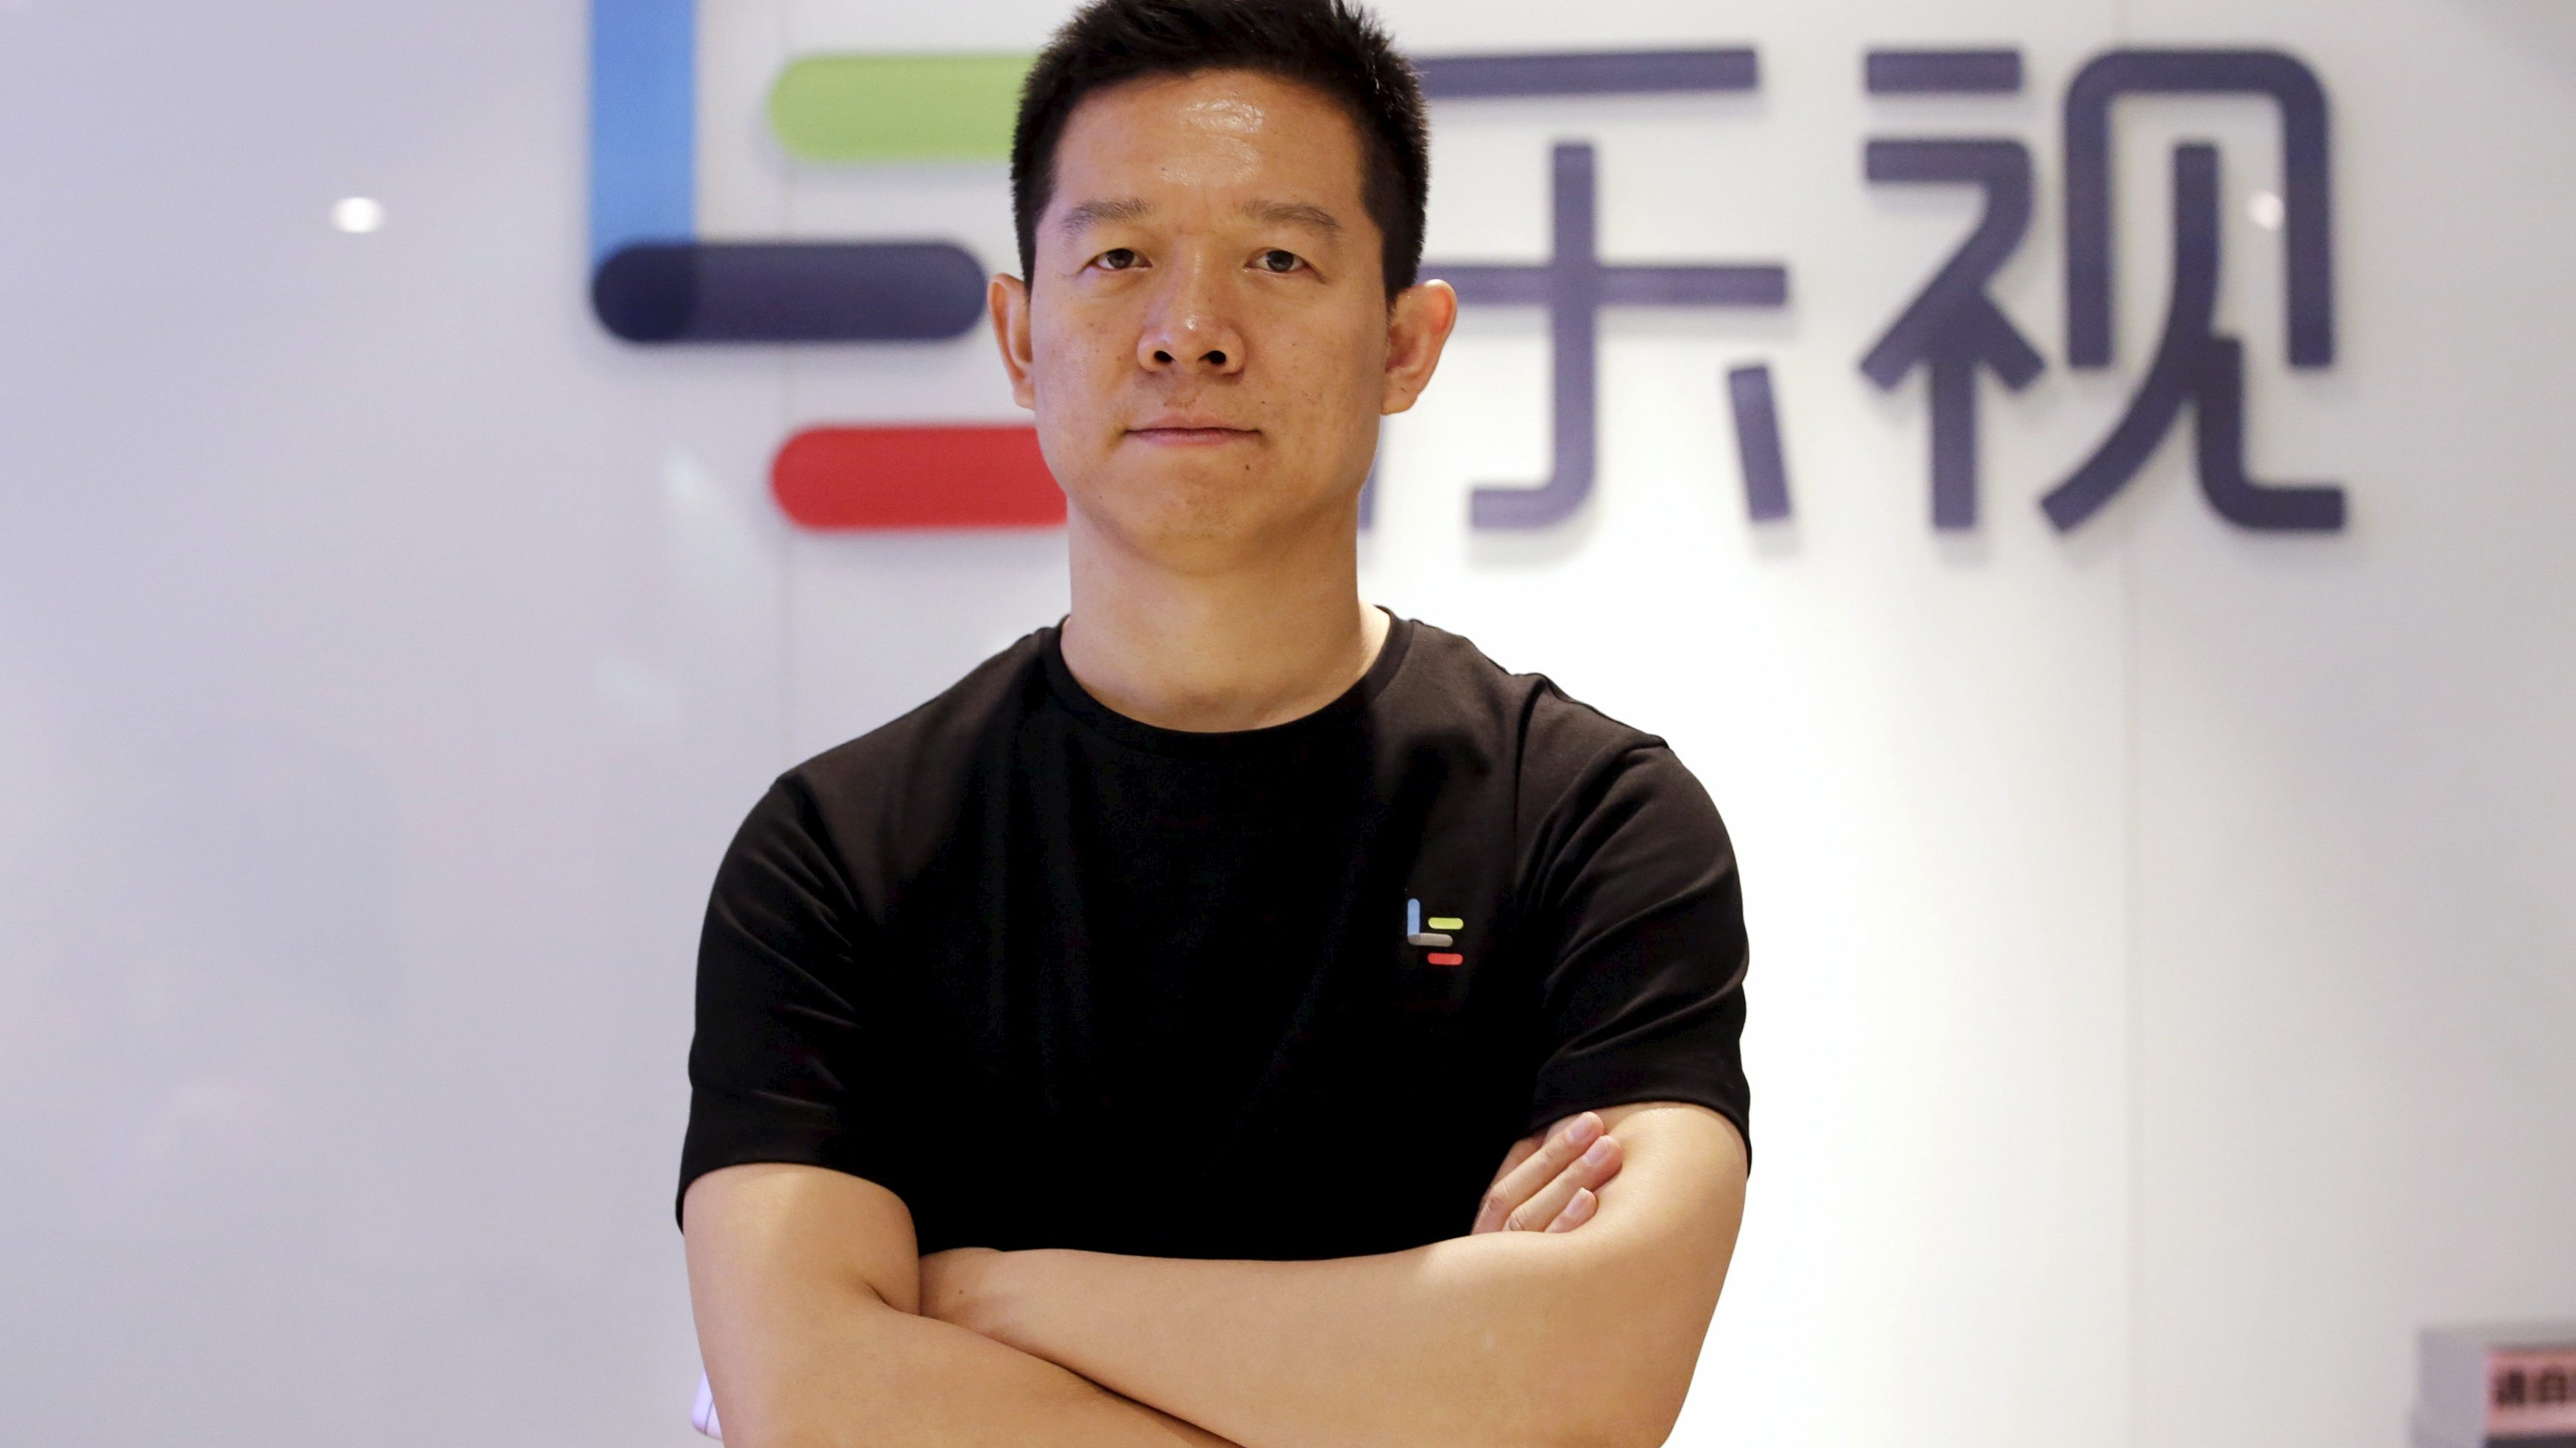 Jia Yueting, co-founder and head of Le Holdings Co Ltd, also known as LeEco and formerly as LeTV, poses for a photo in front of a logo of his company after a Reuters interview at LeEco headquarters in Beijing, China, picture taken April 22, 2016. To match Insight AUTOSHOW-BEIJING/CHINA-LEECO     REUTERS/Jason Lee - GF10000393670